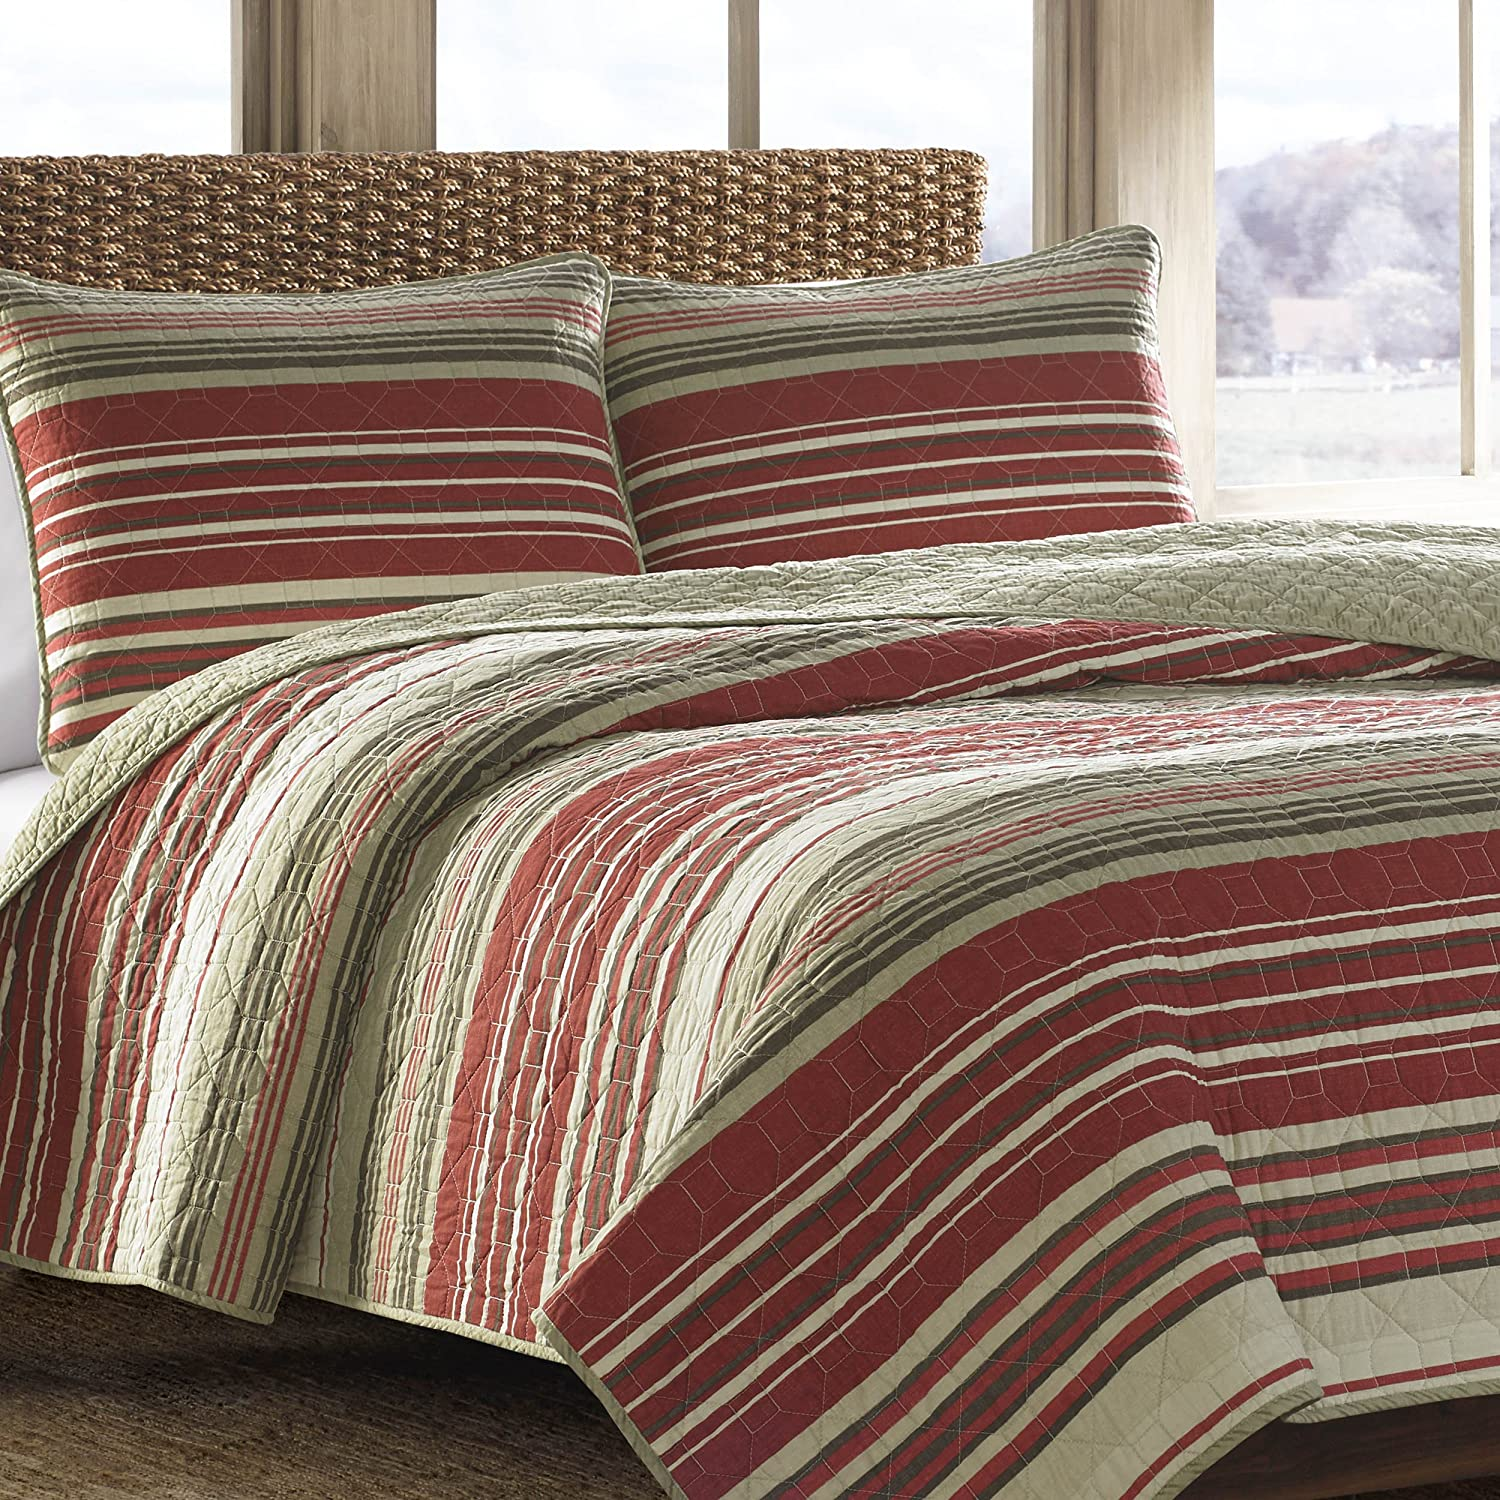 Eddie Bauer Quilt Bedding Set